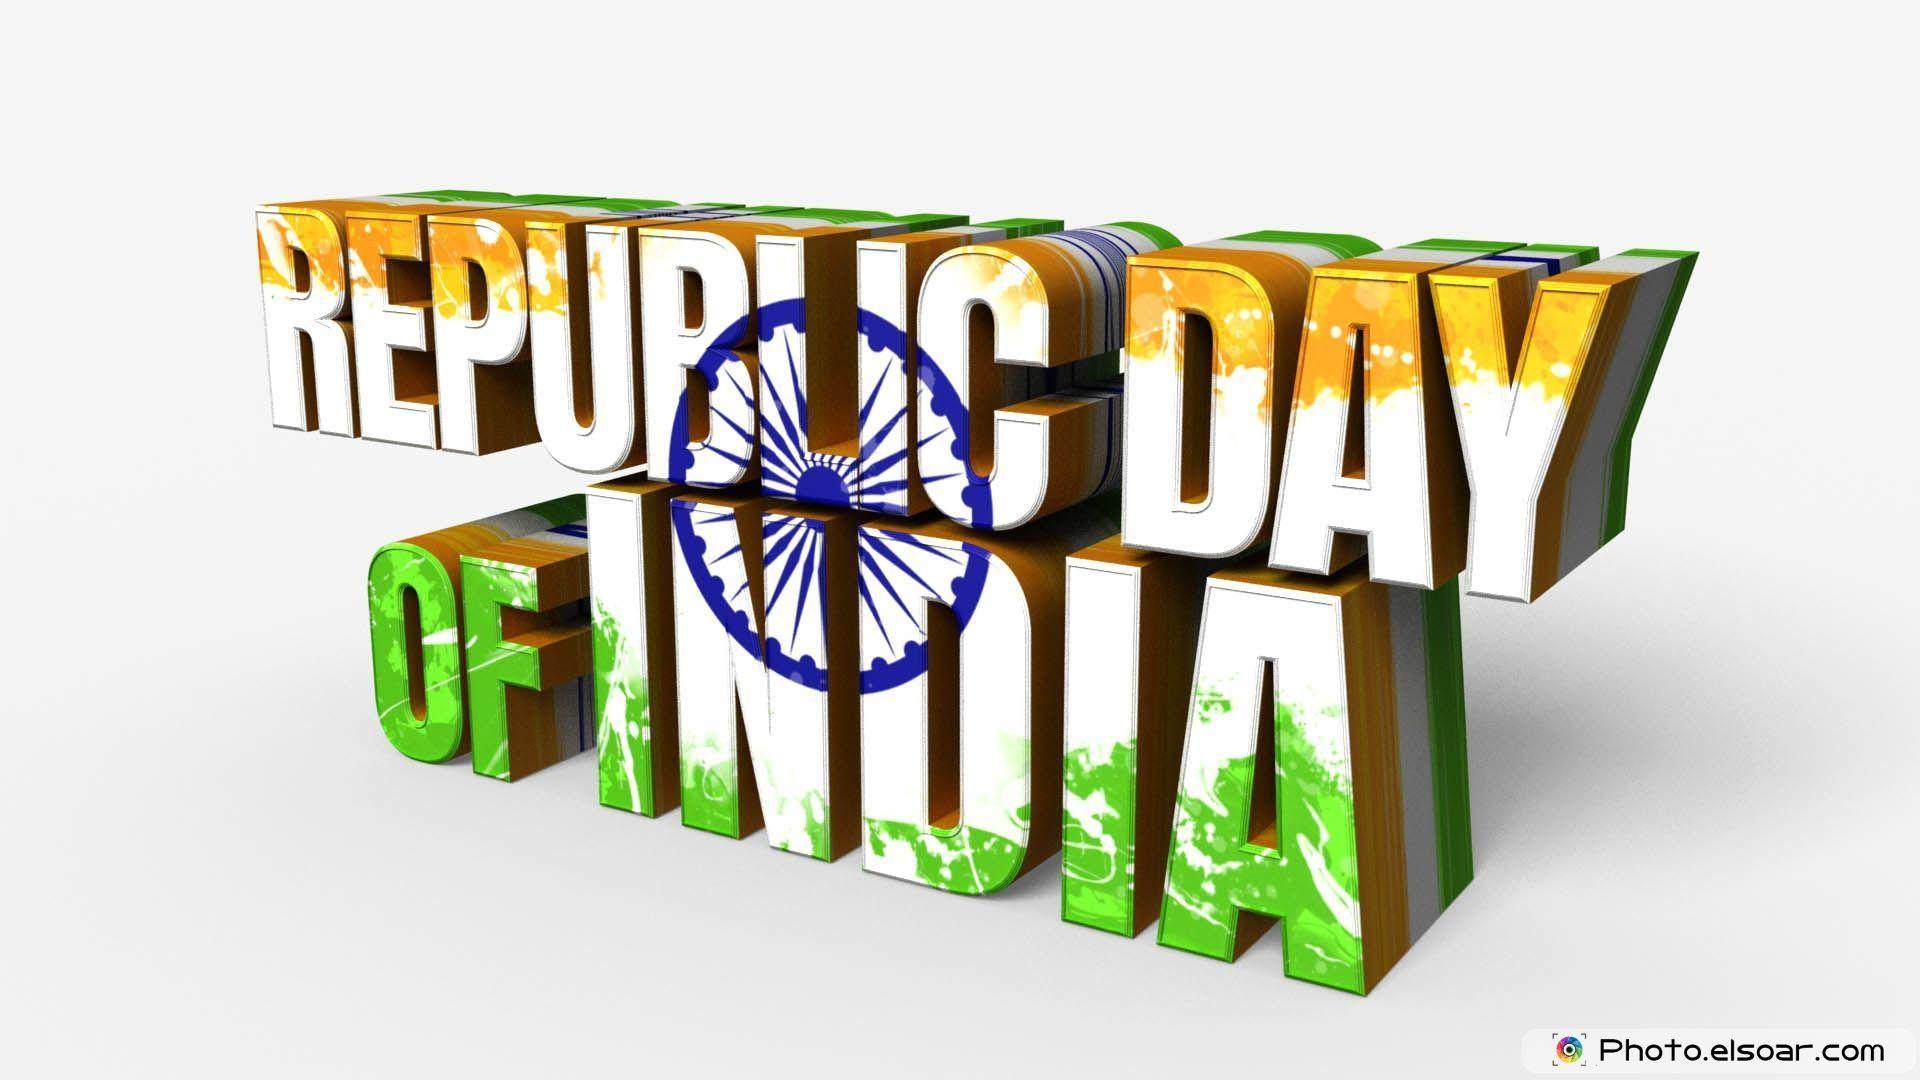 Happy 2016 Republic Day India – Full Story & Image In 365 Days